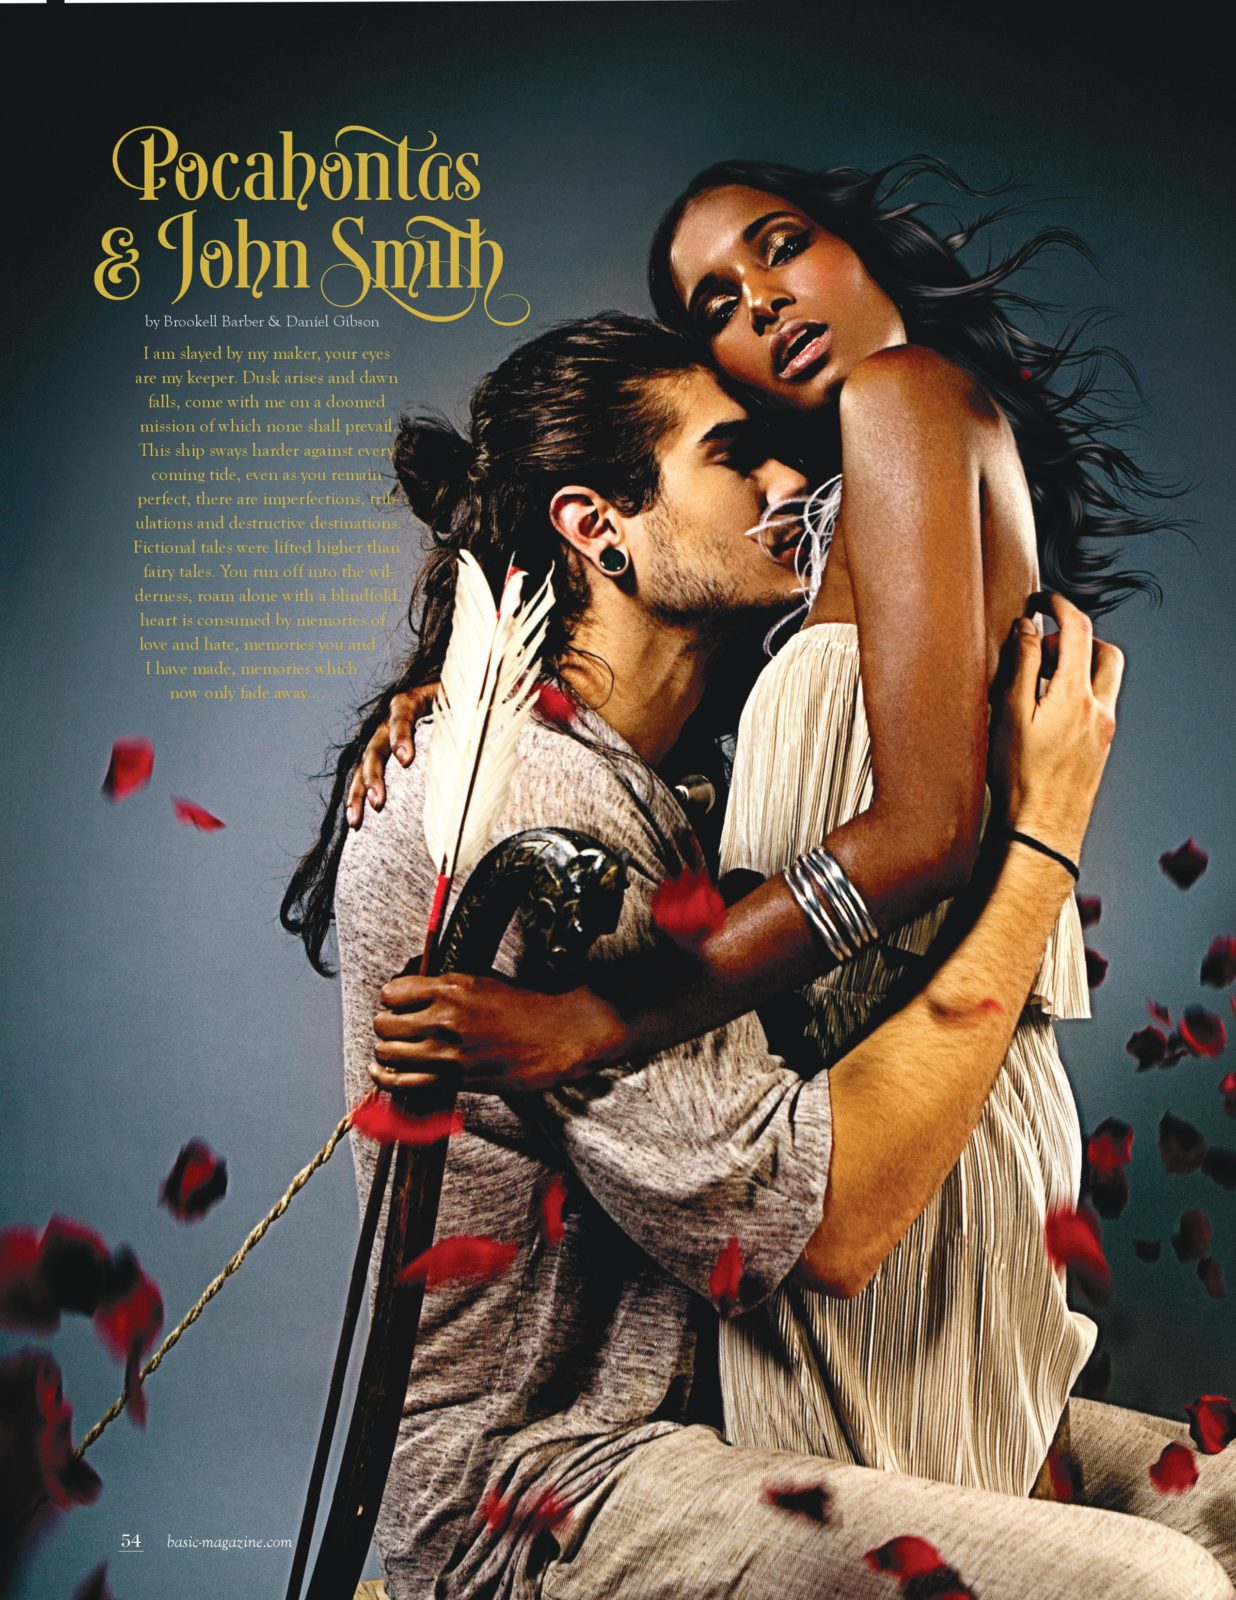 basic magazine love stories pocahontas and joshn smith